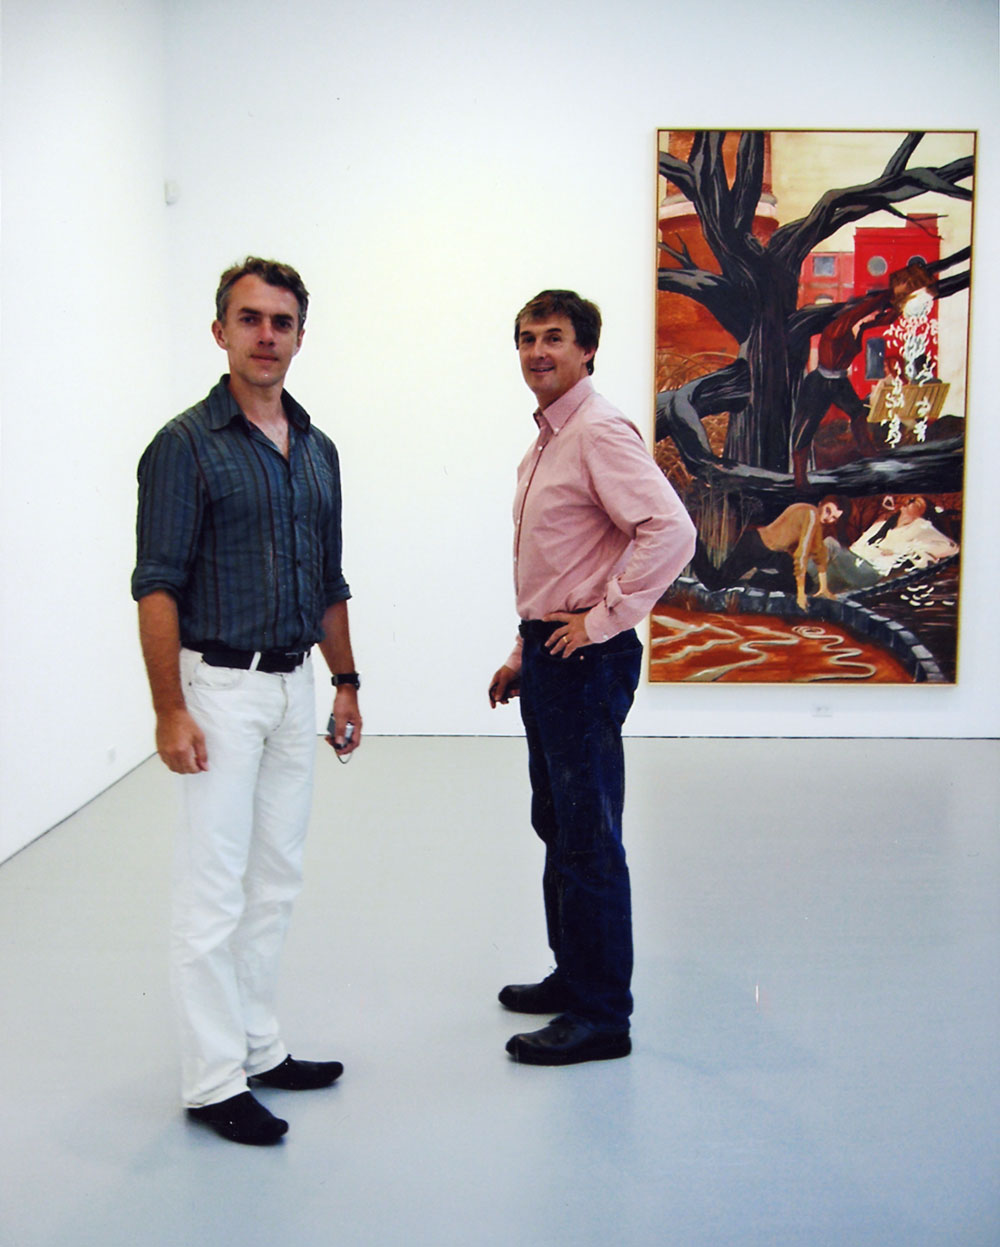 Neo Rauch and David Zwirner during the installation of the exhibition Rosa Loy: 9 Wege at 525 West 19th Street in New York, dated 2006.